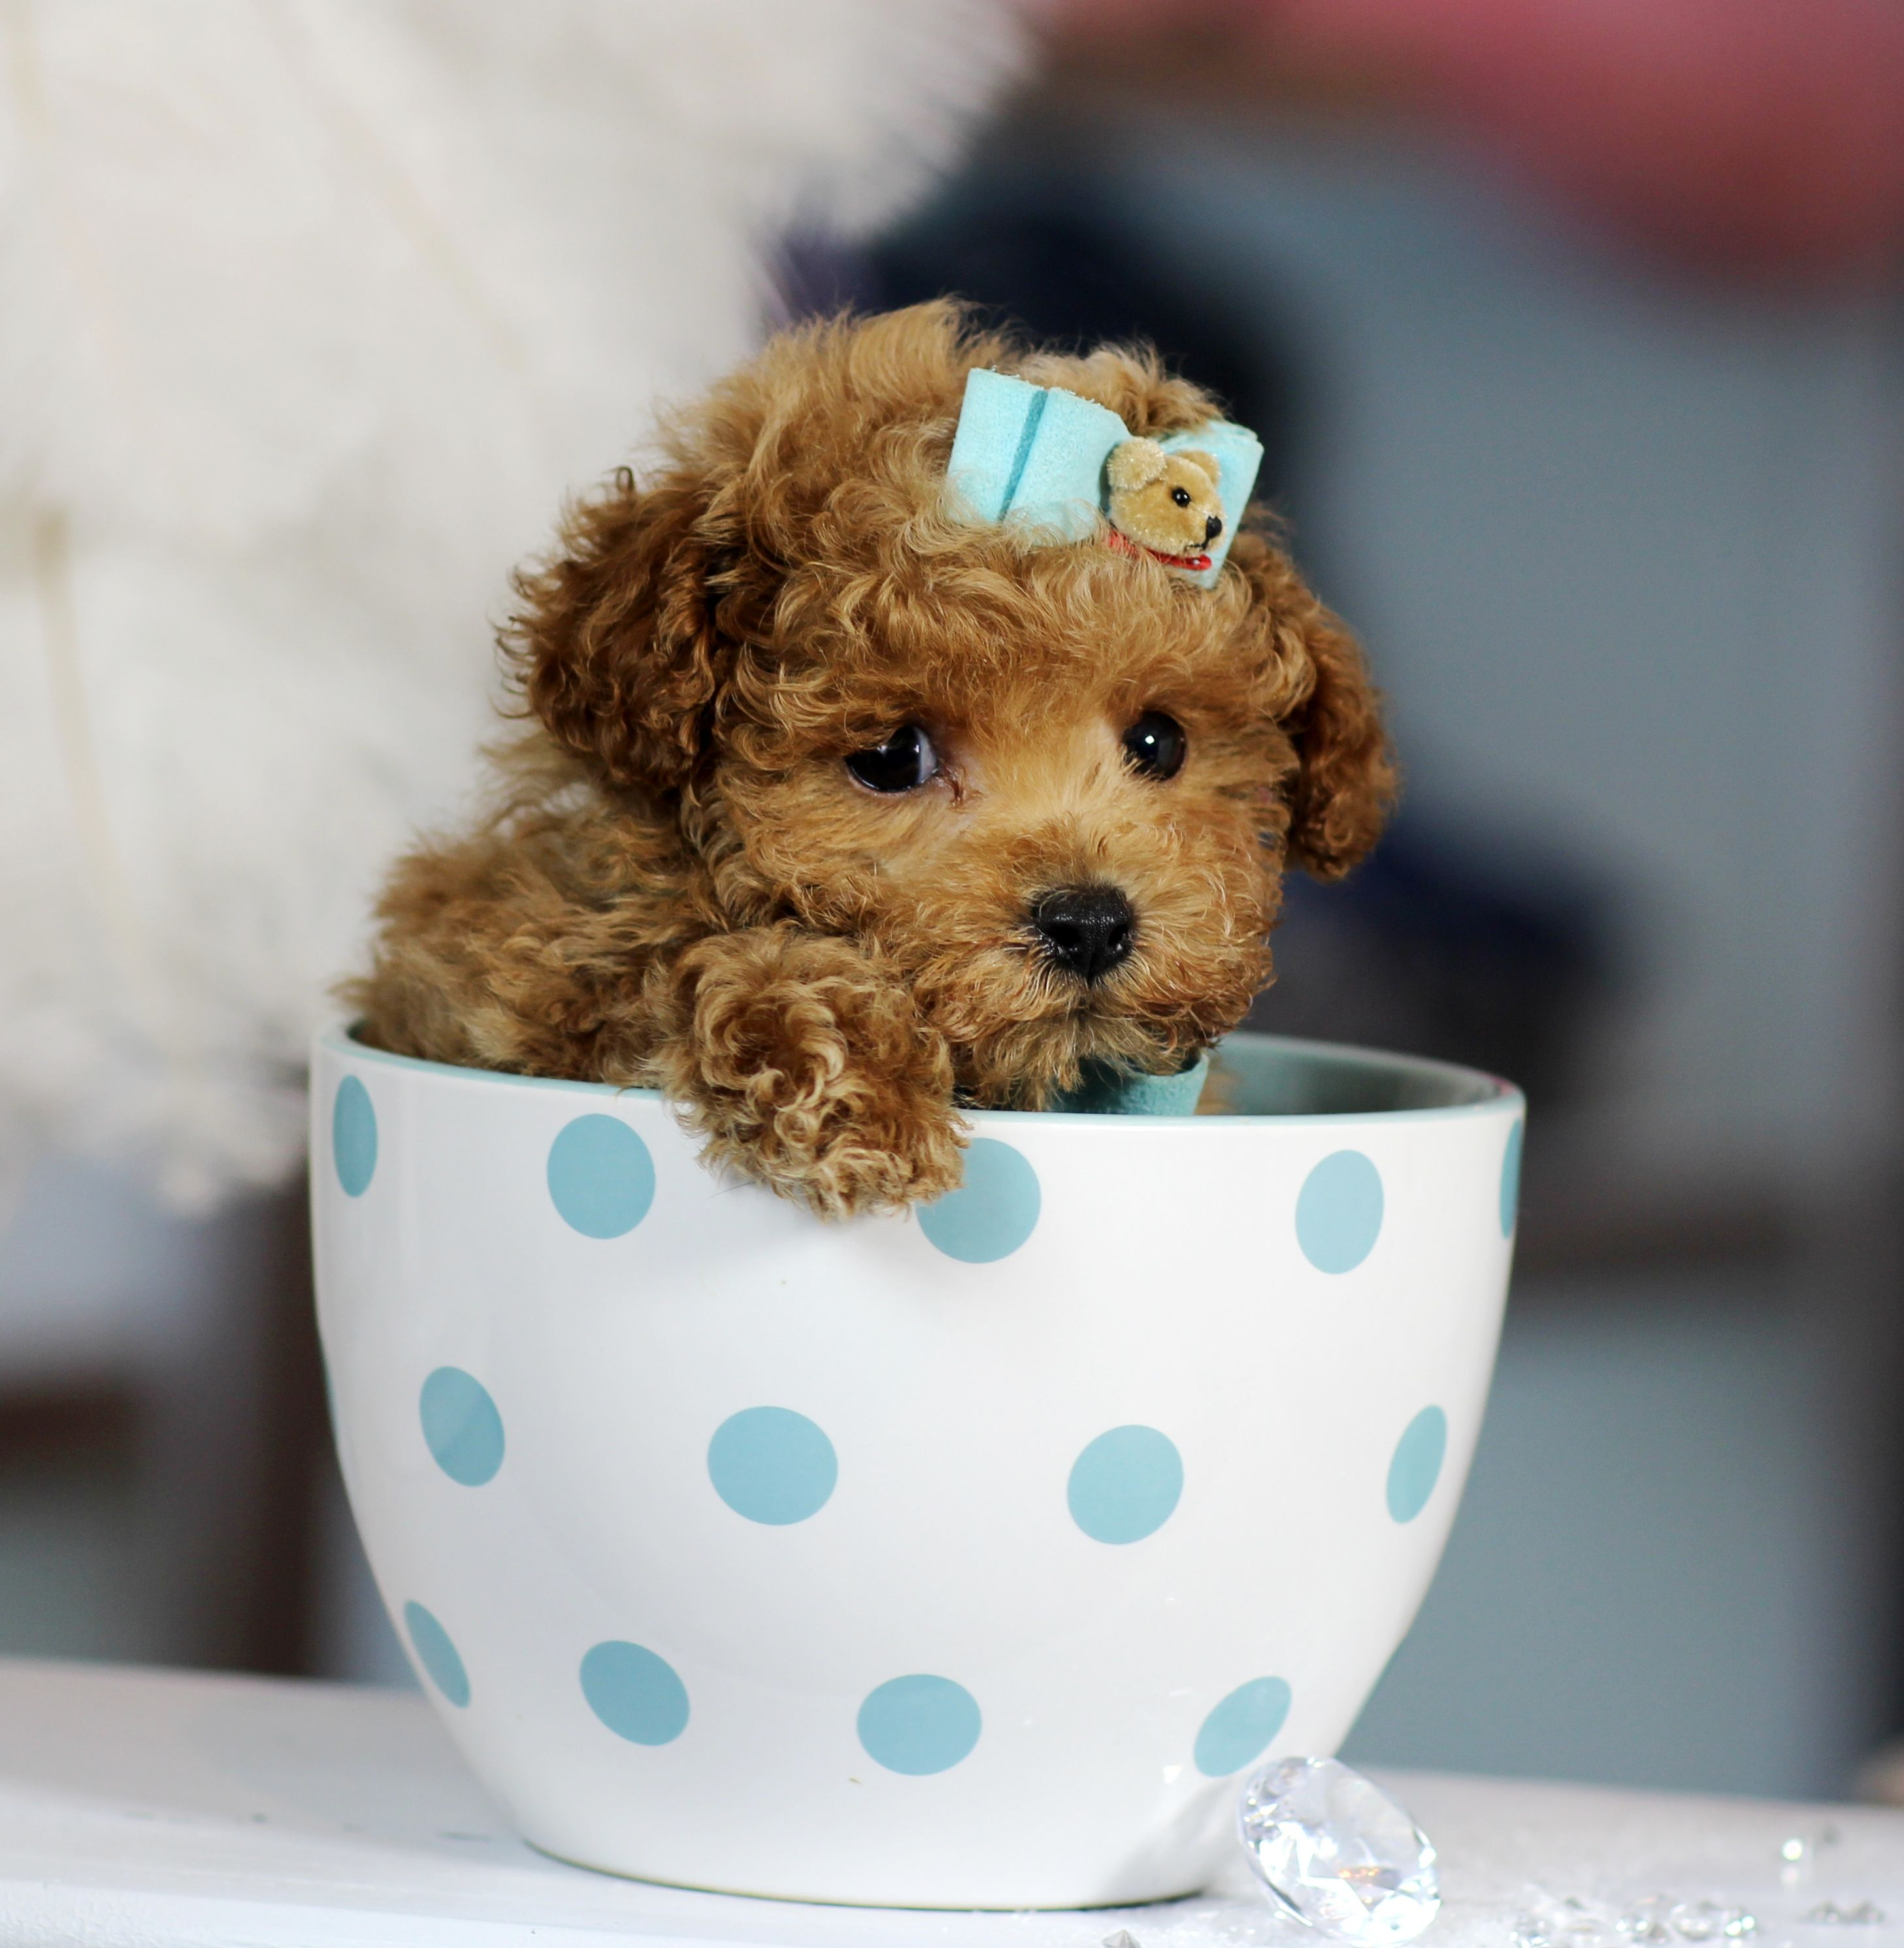 Teacup Poodle! ♥♥♥ Bring This Perfect Baby Home Today ...  Teacup Poodle! ...